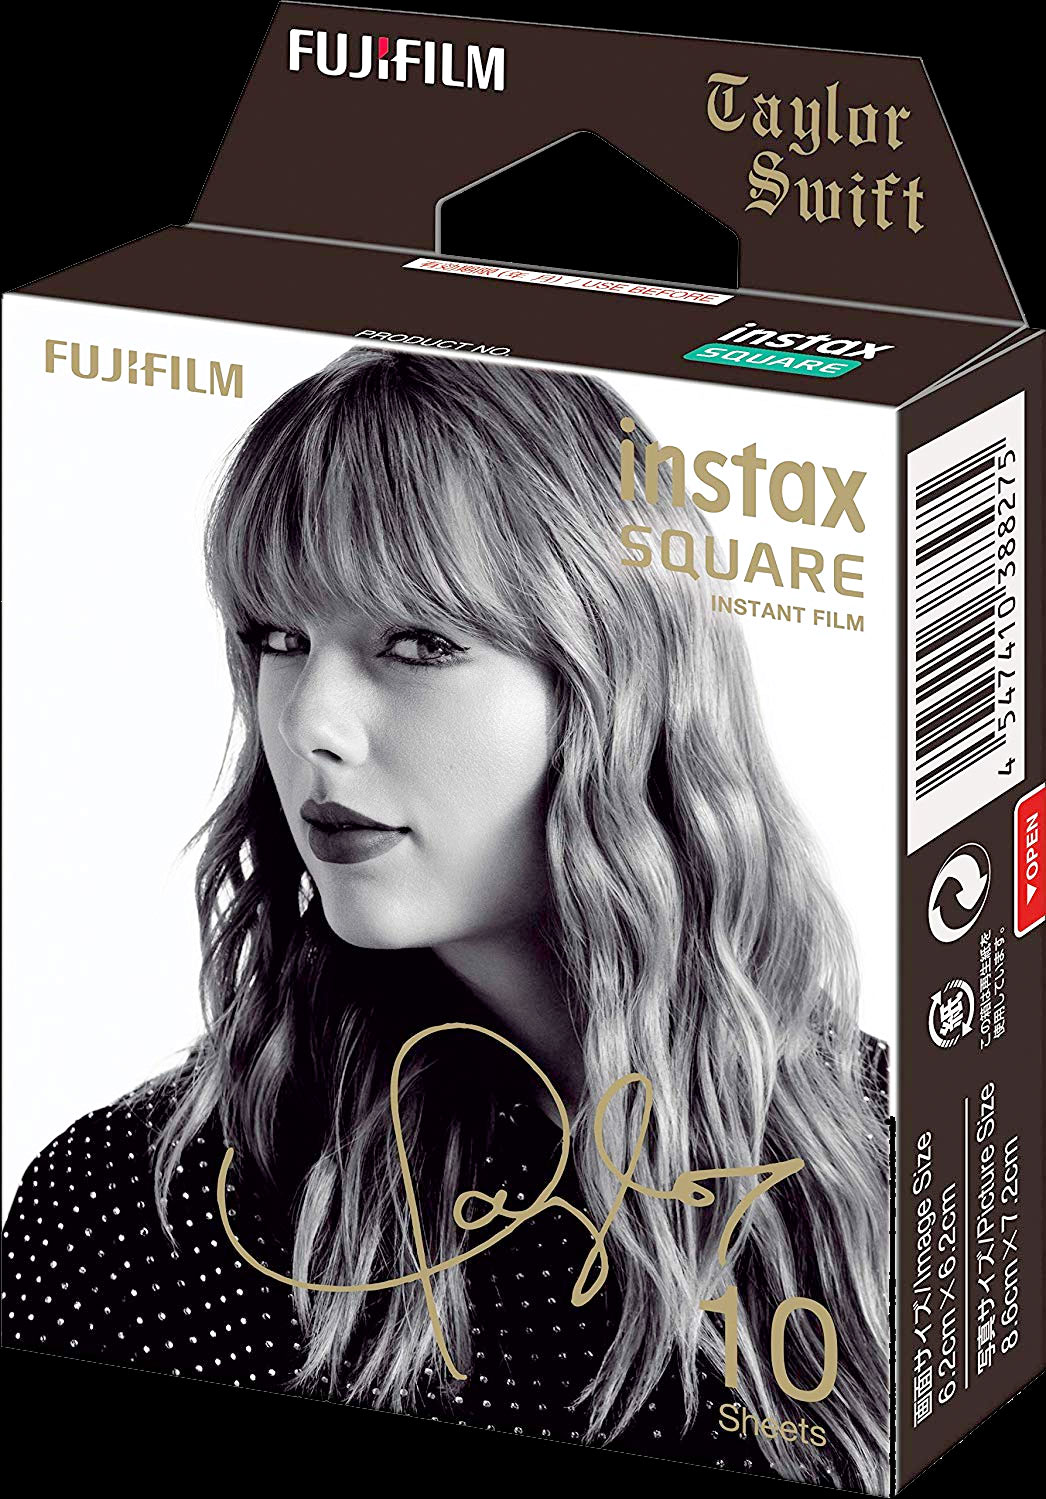 retro-styled Instax camera Taylor Swift Edition